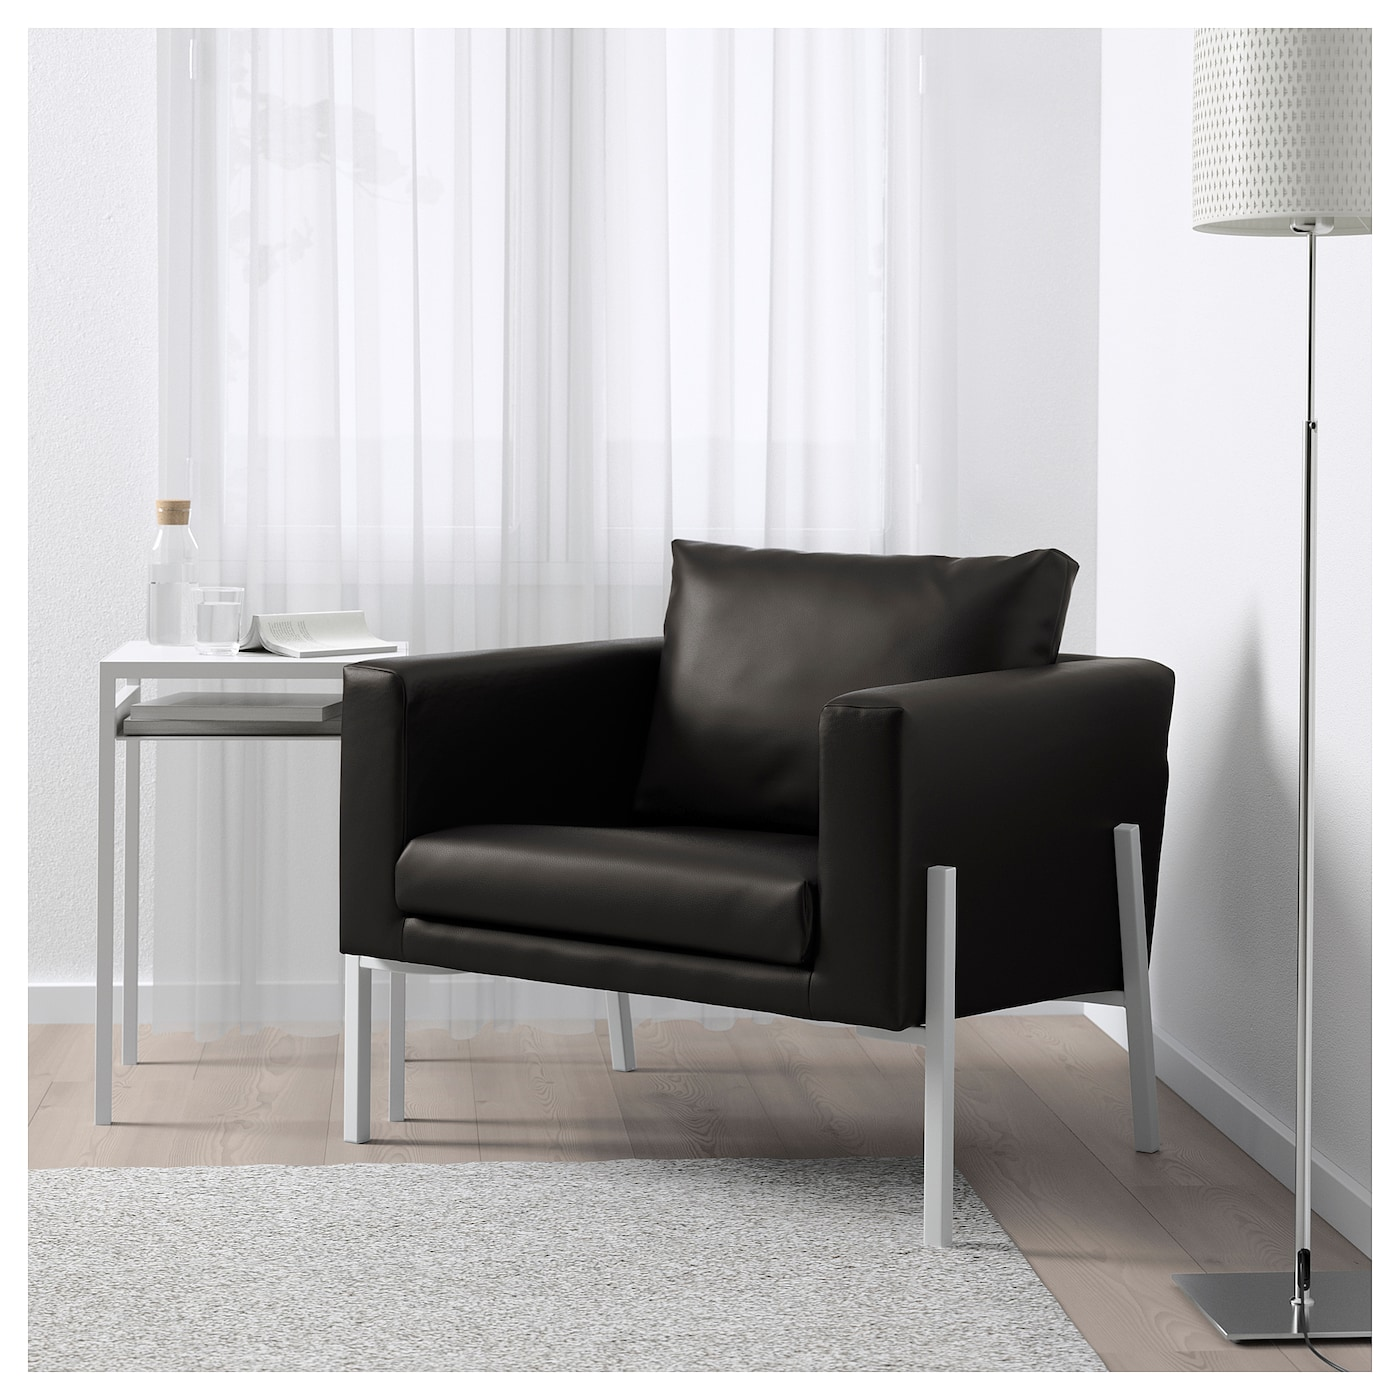 koarp fauteuil farsta noir blanc ikea. Black Bedroom Furniture Sets. Home Design Ideas